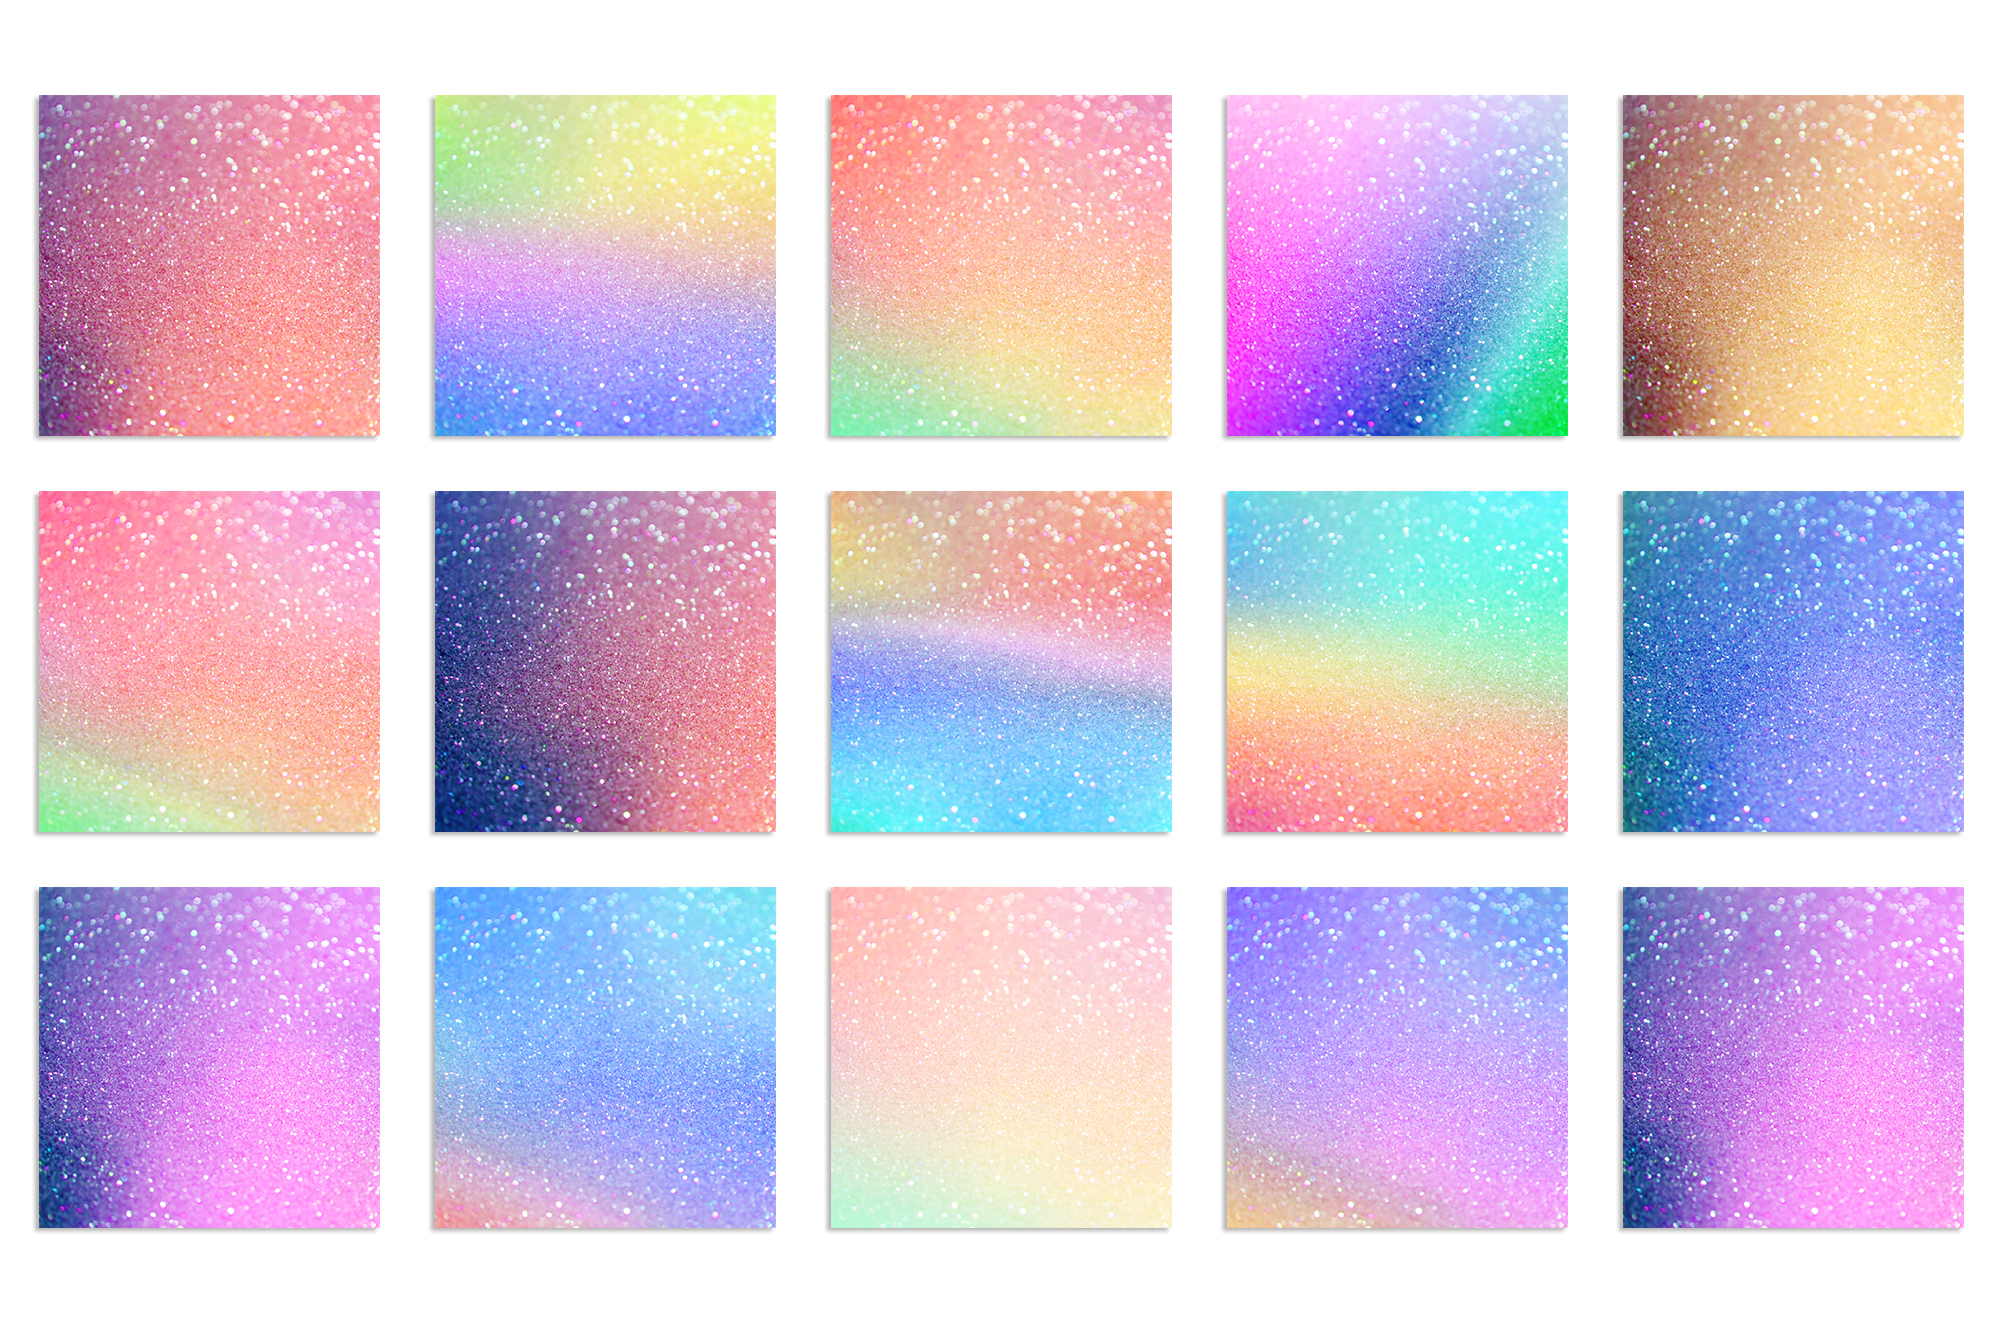 Iridescent Glitter and Foil Textures example image 9